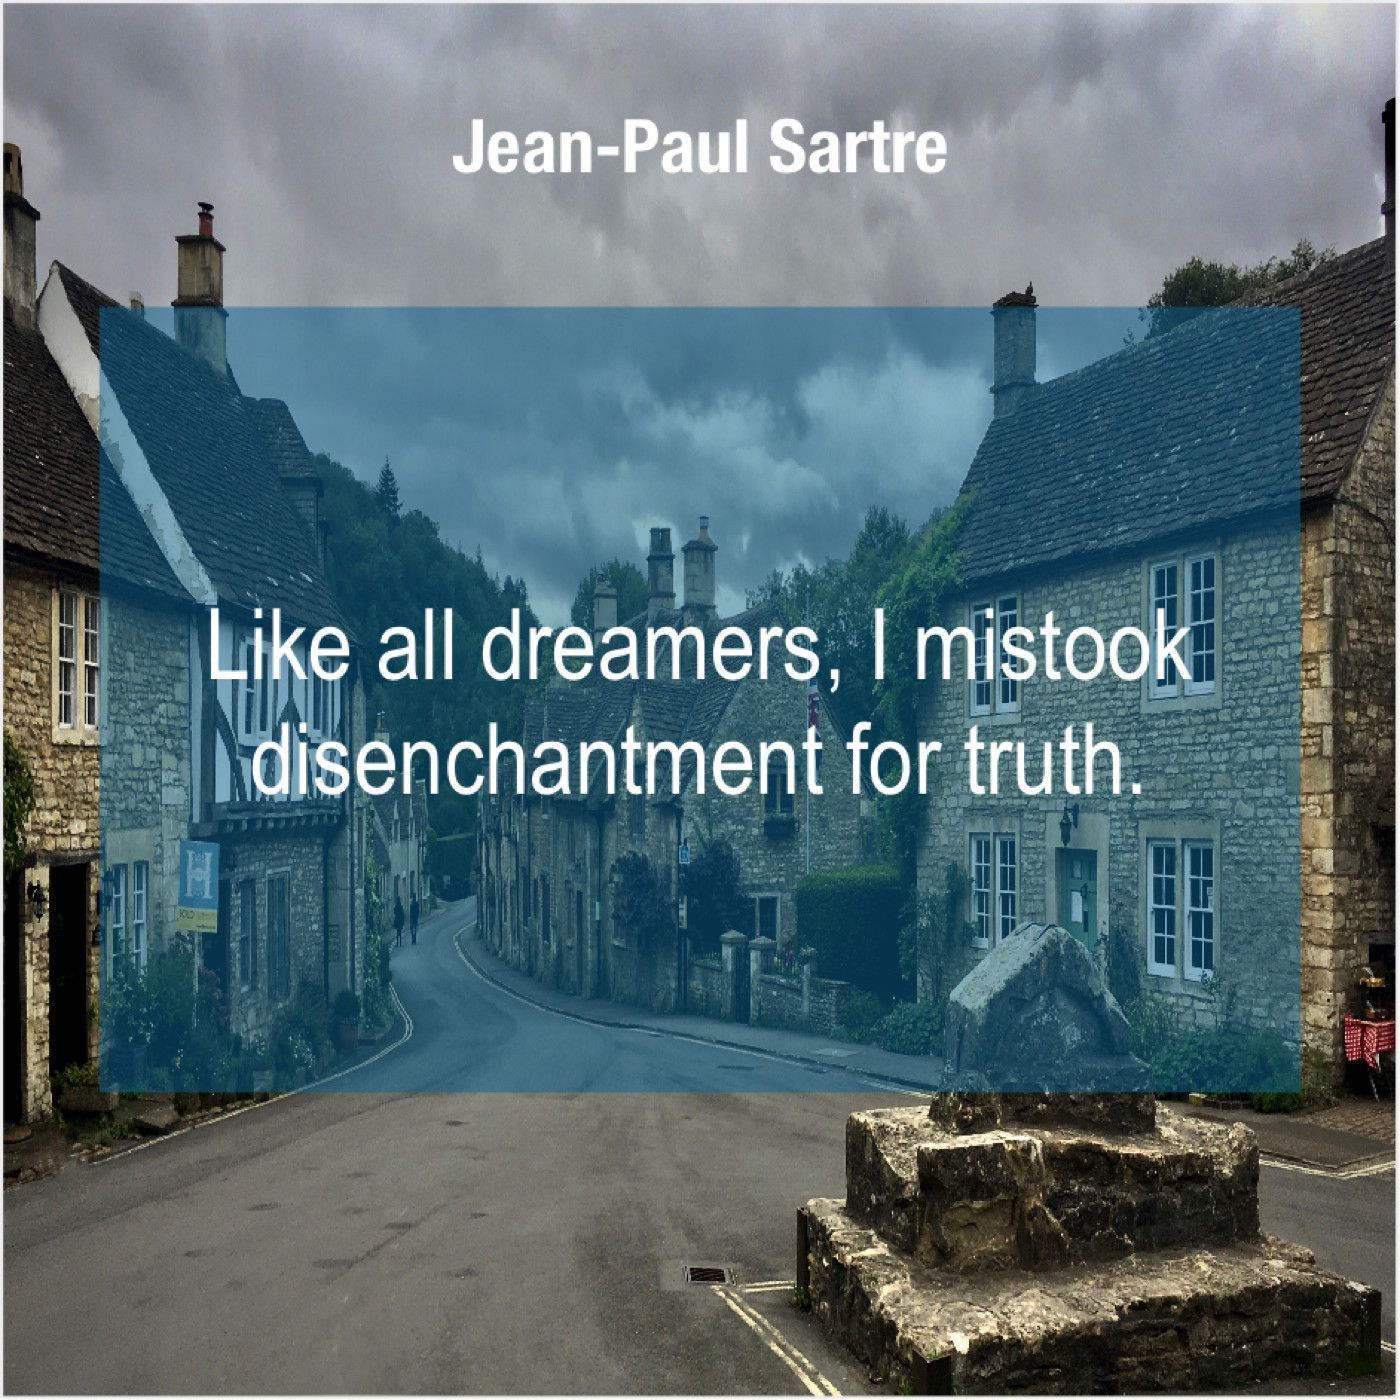 Jean-Paul Sartre  Like all dreamers I mistook #jeanpaulsartre Jean-Paul Sartre  Like all dreamers I mistook #jeanpaulsartre Jean-Paul Sartre  Like all dreamers I mistook #jeanpaulsartre Jean-Paul Sartre  Like all dreamers I mistook #jeanpaulsartre Jean-Paul Sartre  Like all dreamers I mistook #jeanpaulsartre Jean-Paul Sartre  Like all dreamers I mistook #jeanpaulsartre Jean-Paul Sartre  Like all dreamers I mistook #jeanpaulsartre Jean-Paul Sartre  Like all dreamers I mistook #jeanpaulsartre